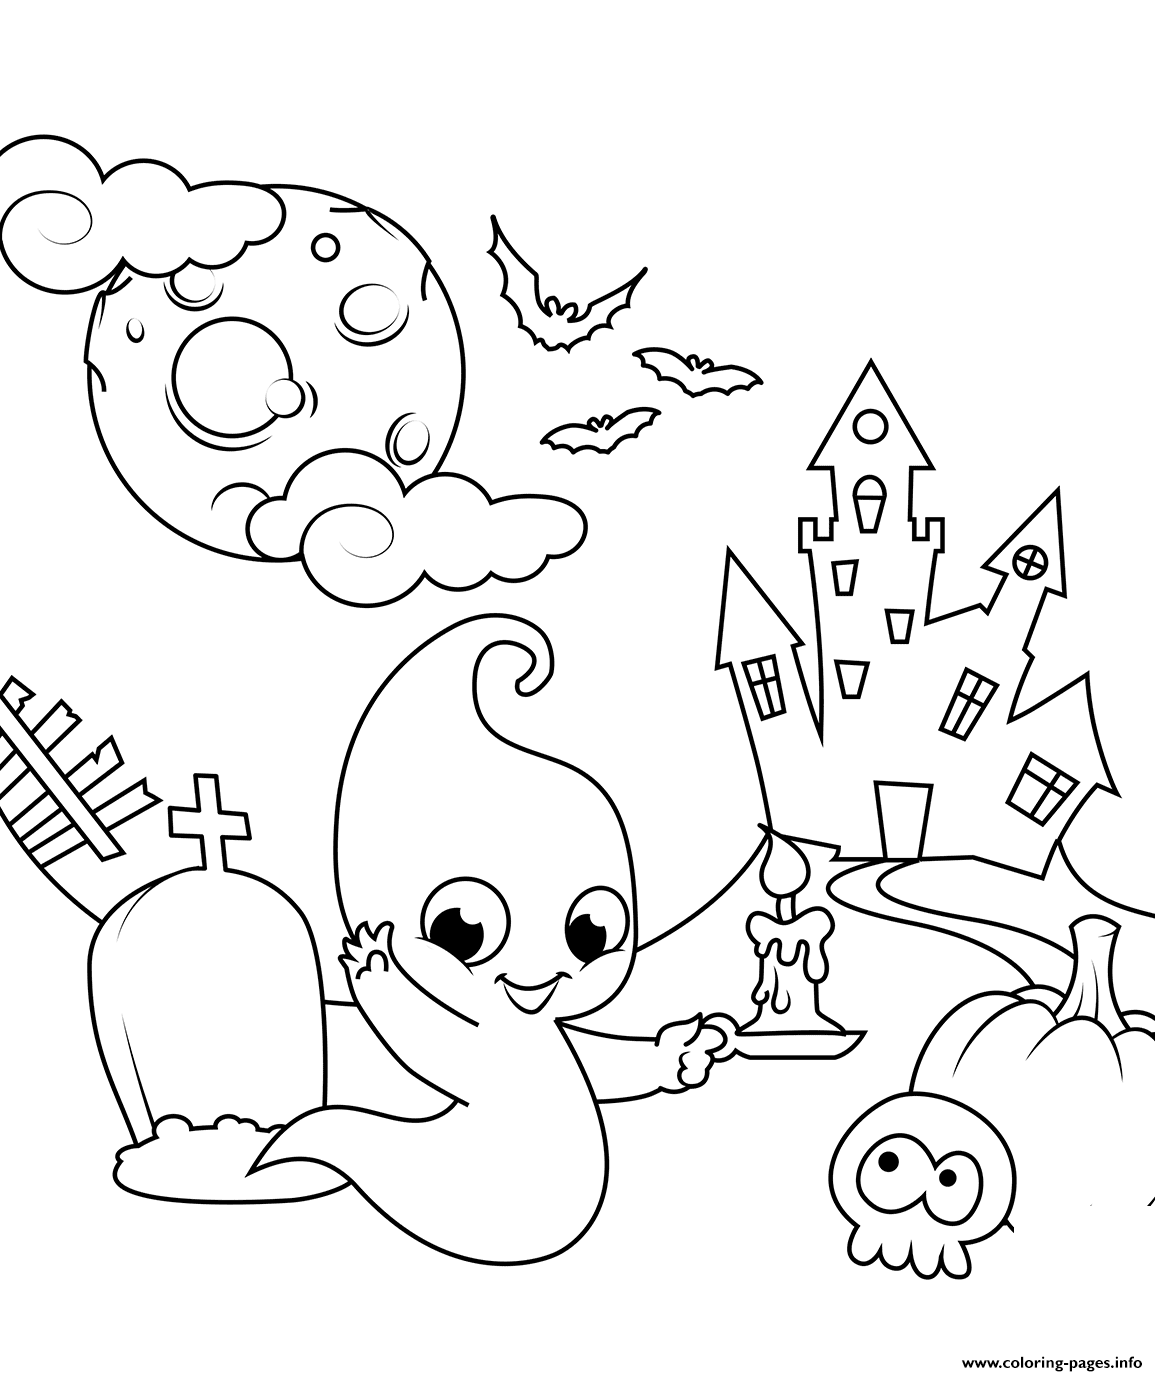 Scene With A Cute Ghost Halloween Coloring Pages Printable